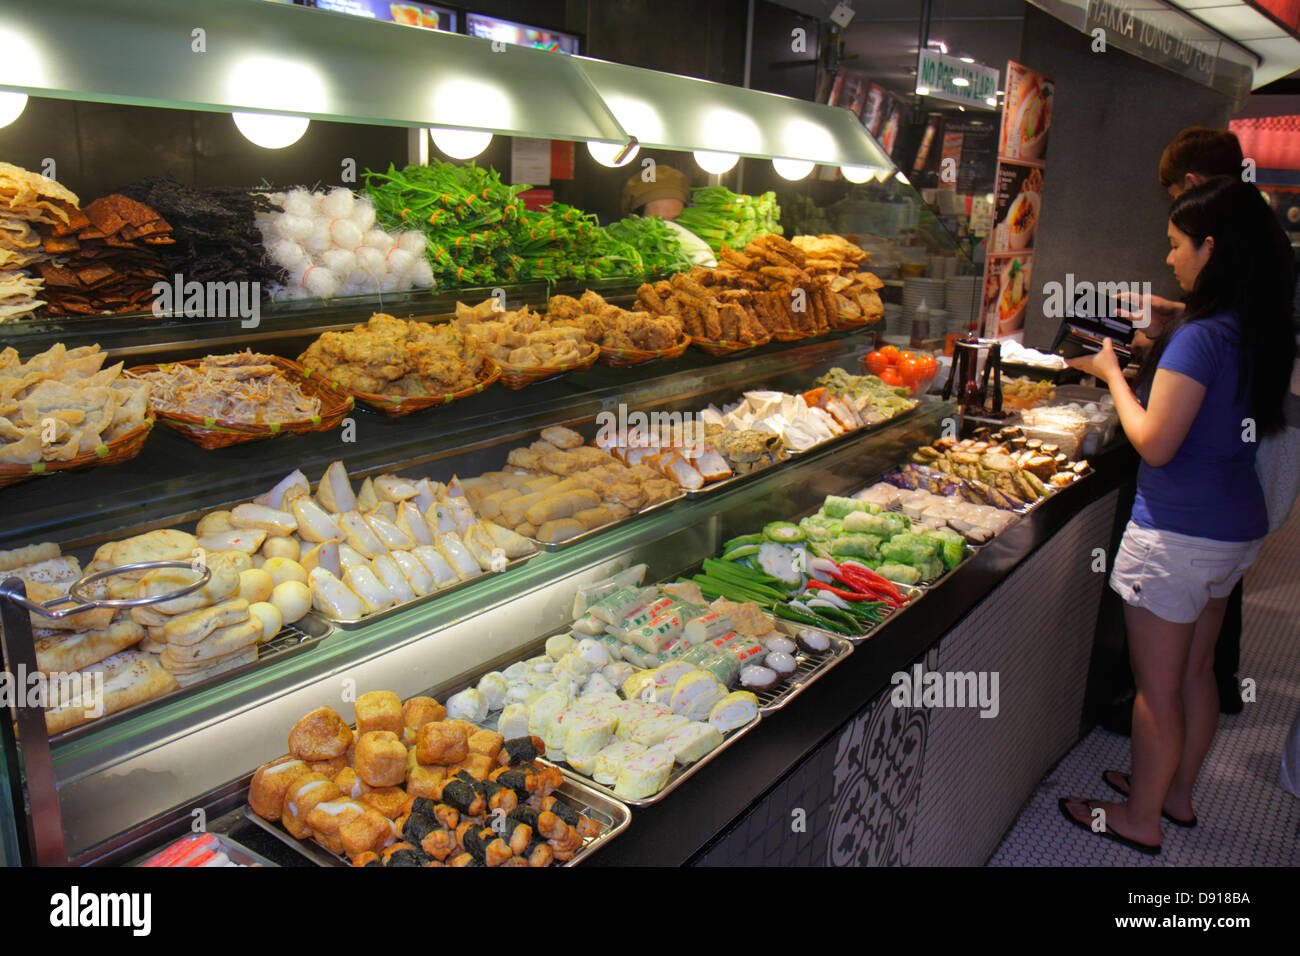 Singapore The Shoppes at Marina Bay Sands shops shopping Asian man restaurant food court cafeteria - Stock Image